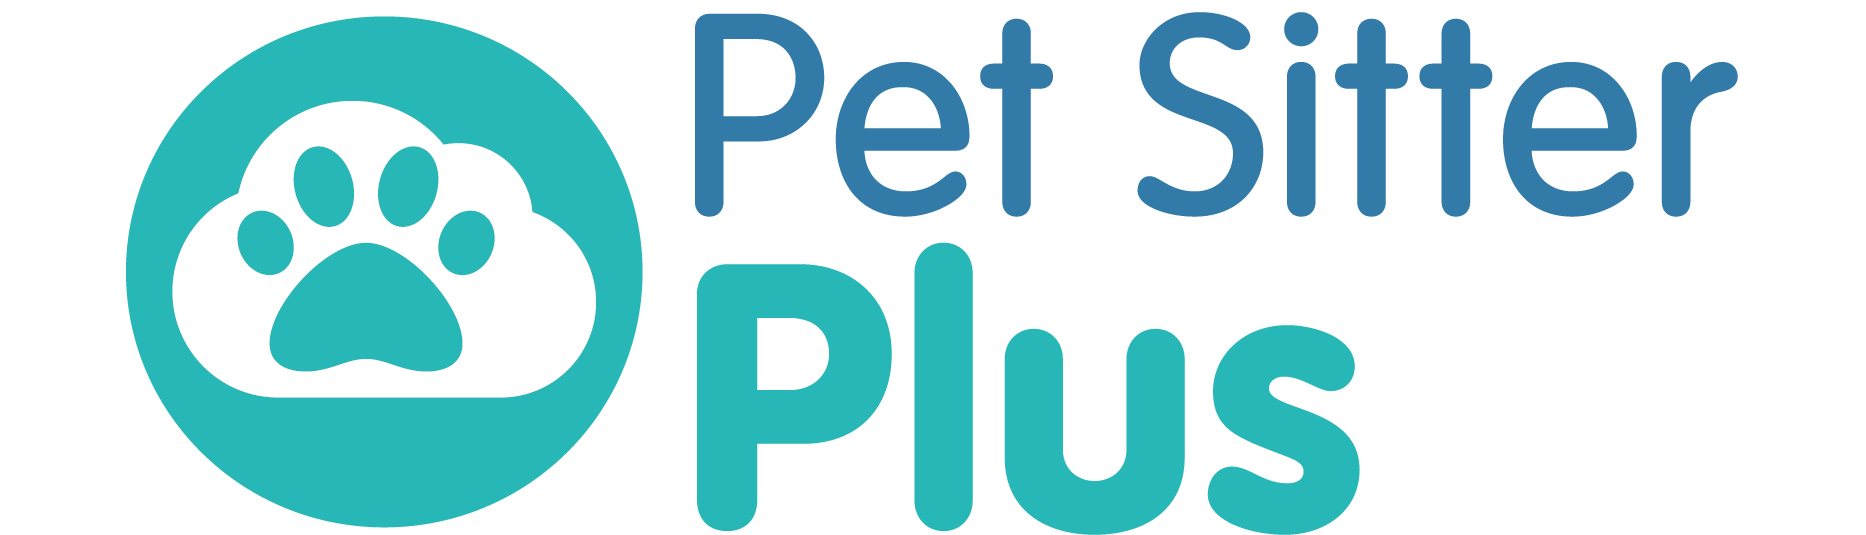 Pet Sitter Plus Software Button